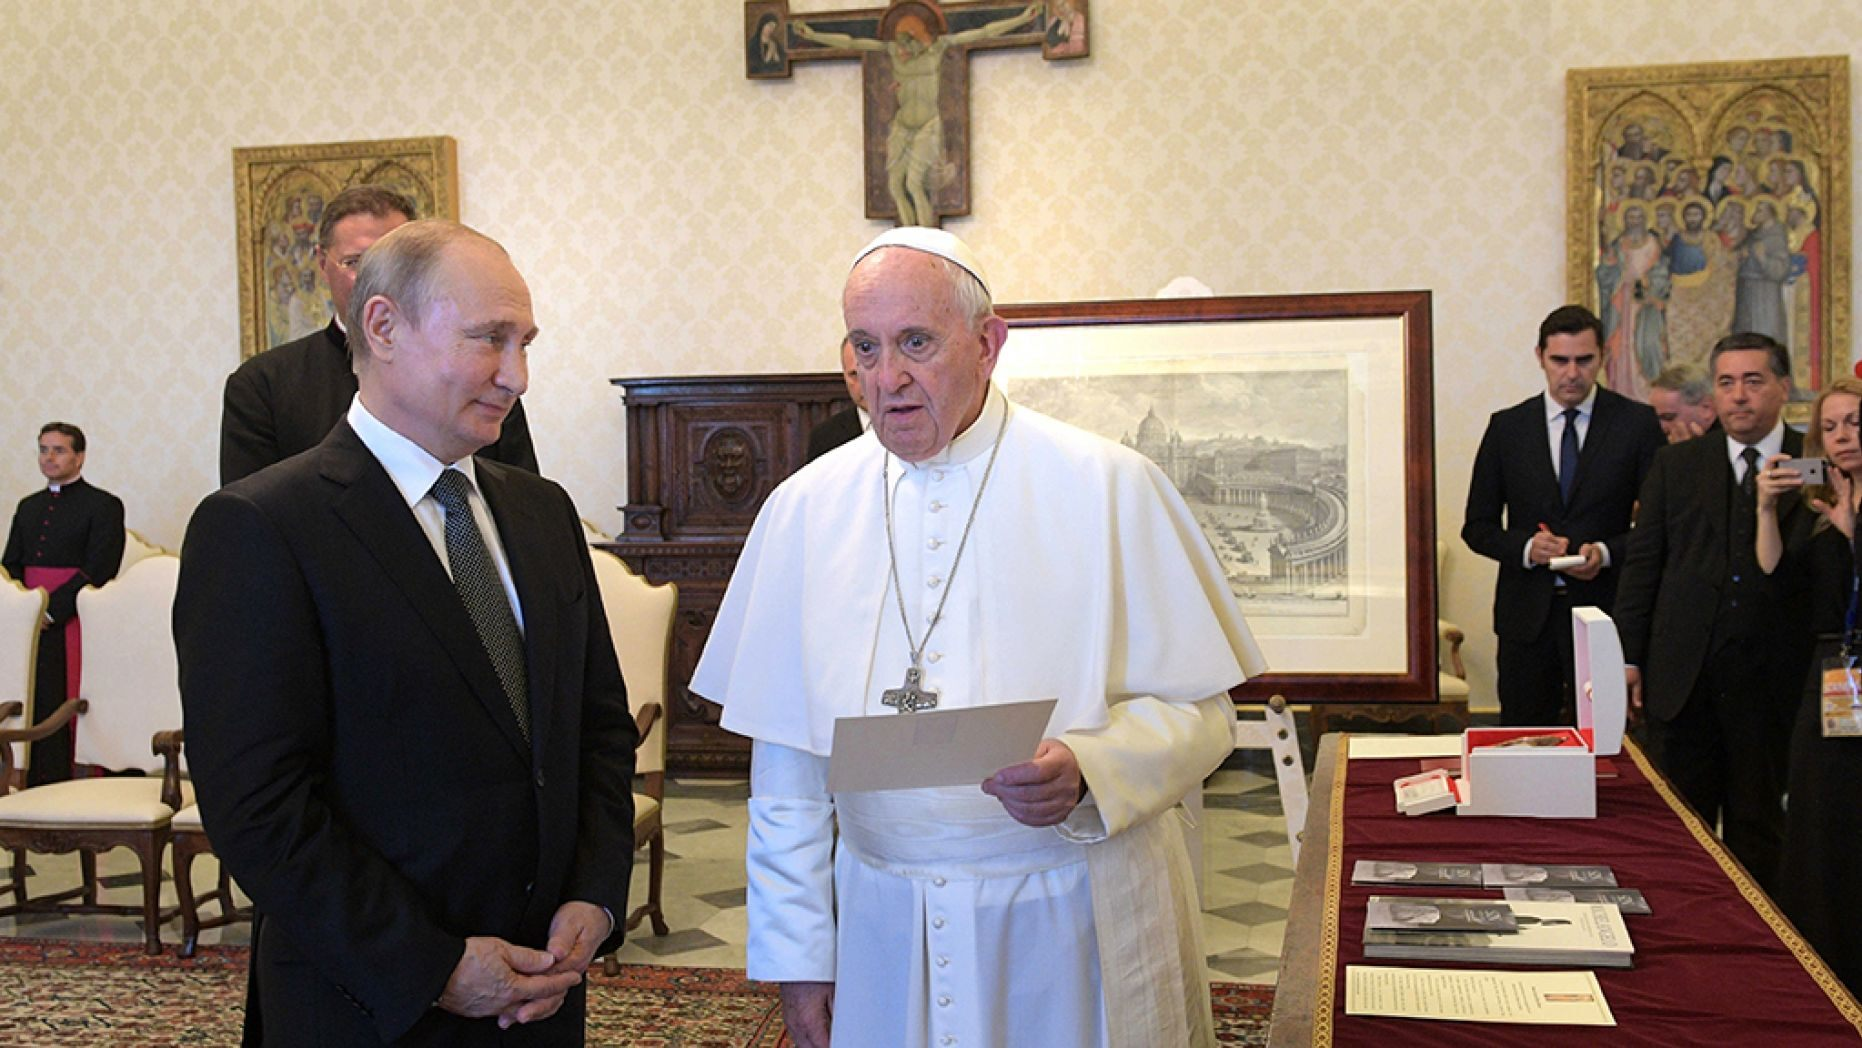 Pope Francis and Putin meet at Vatican, discuss Syria, Ukraine